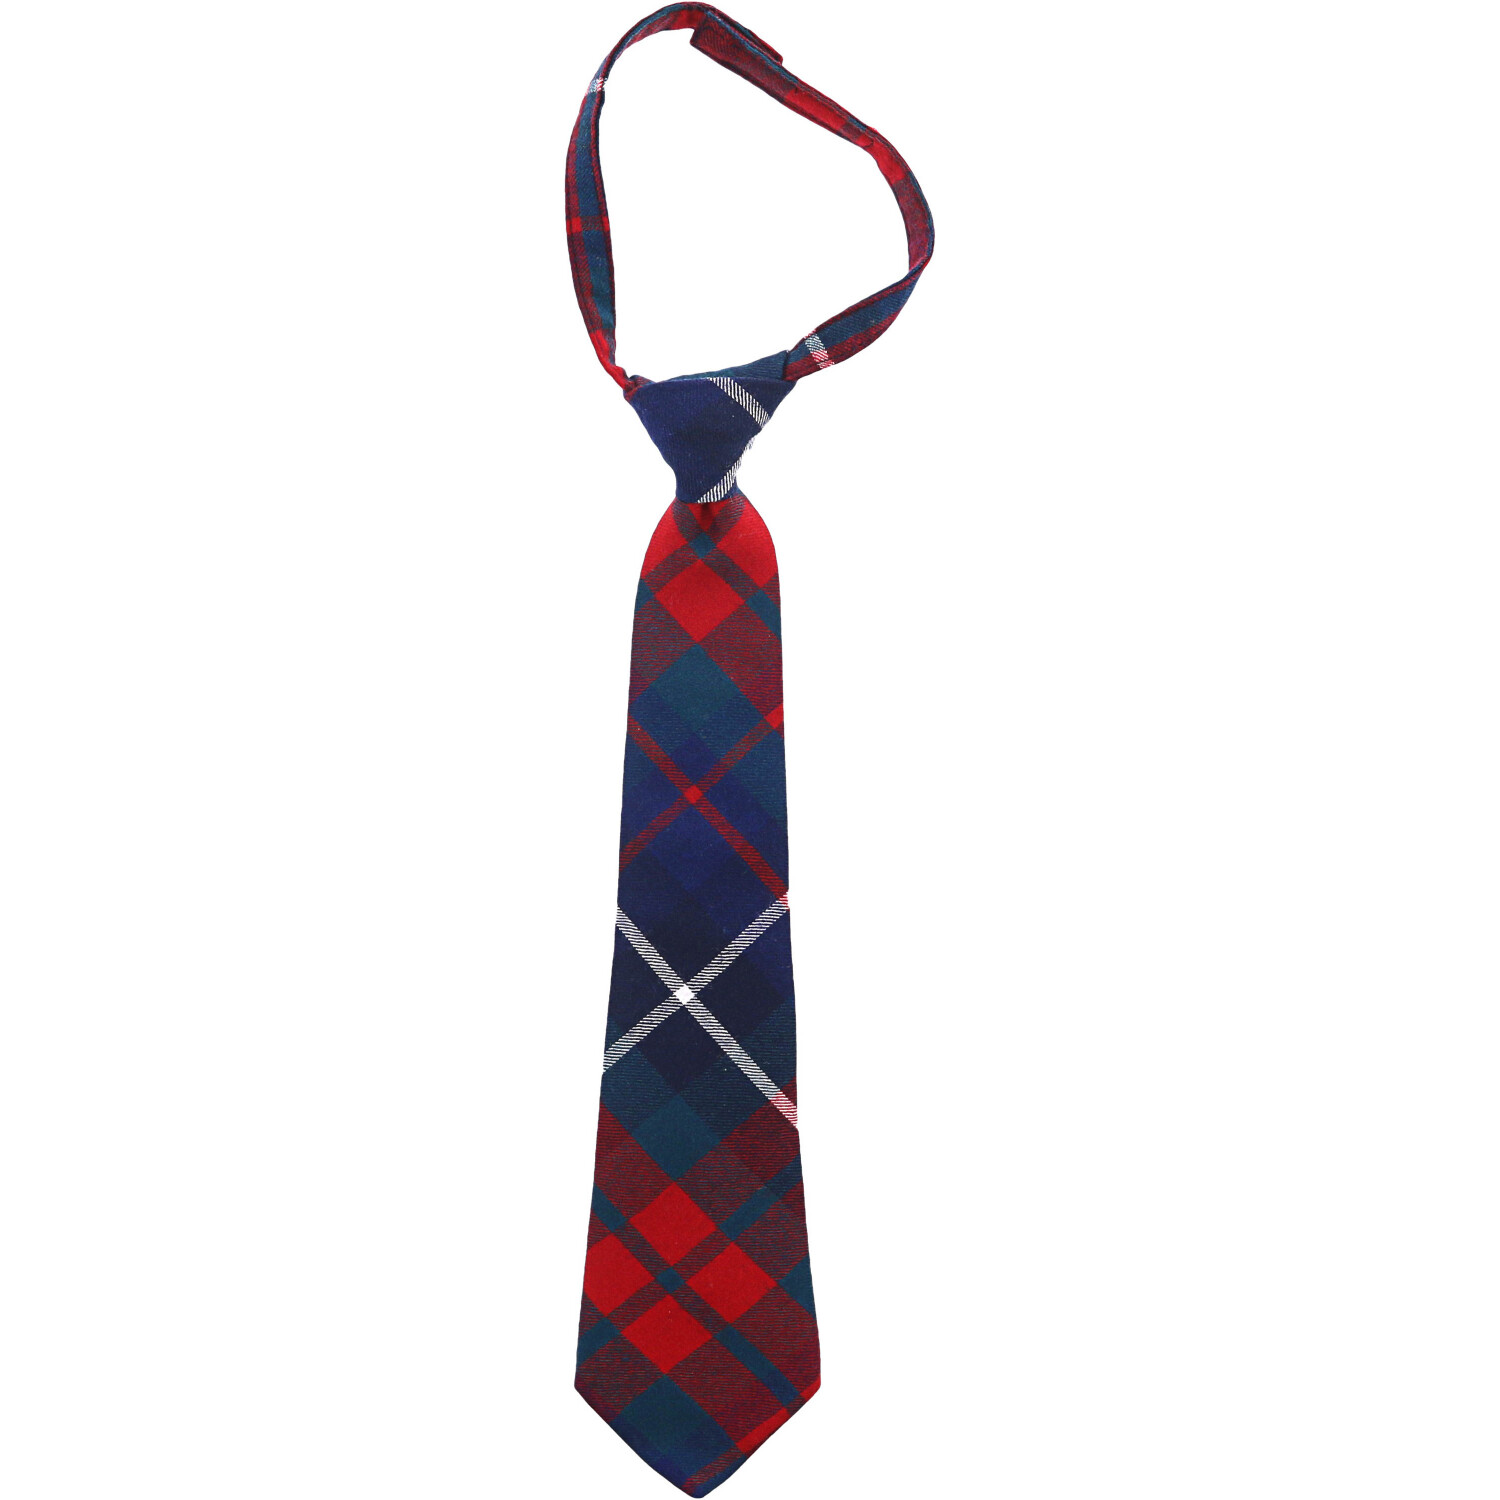 Janie And Jack Plaid Tie Neckty - 2-5 - Red / Green / Navy Plaid